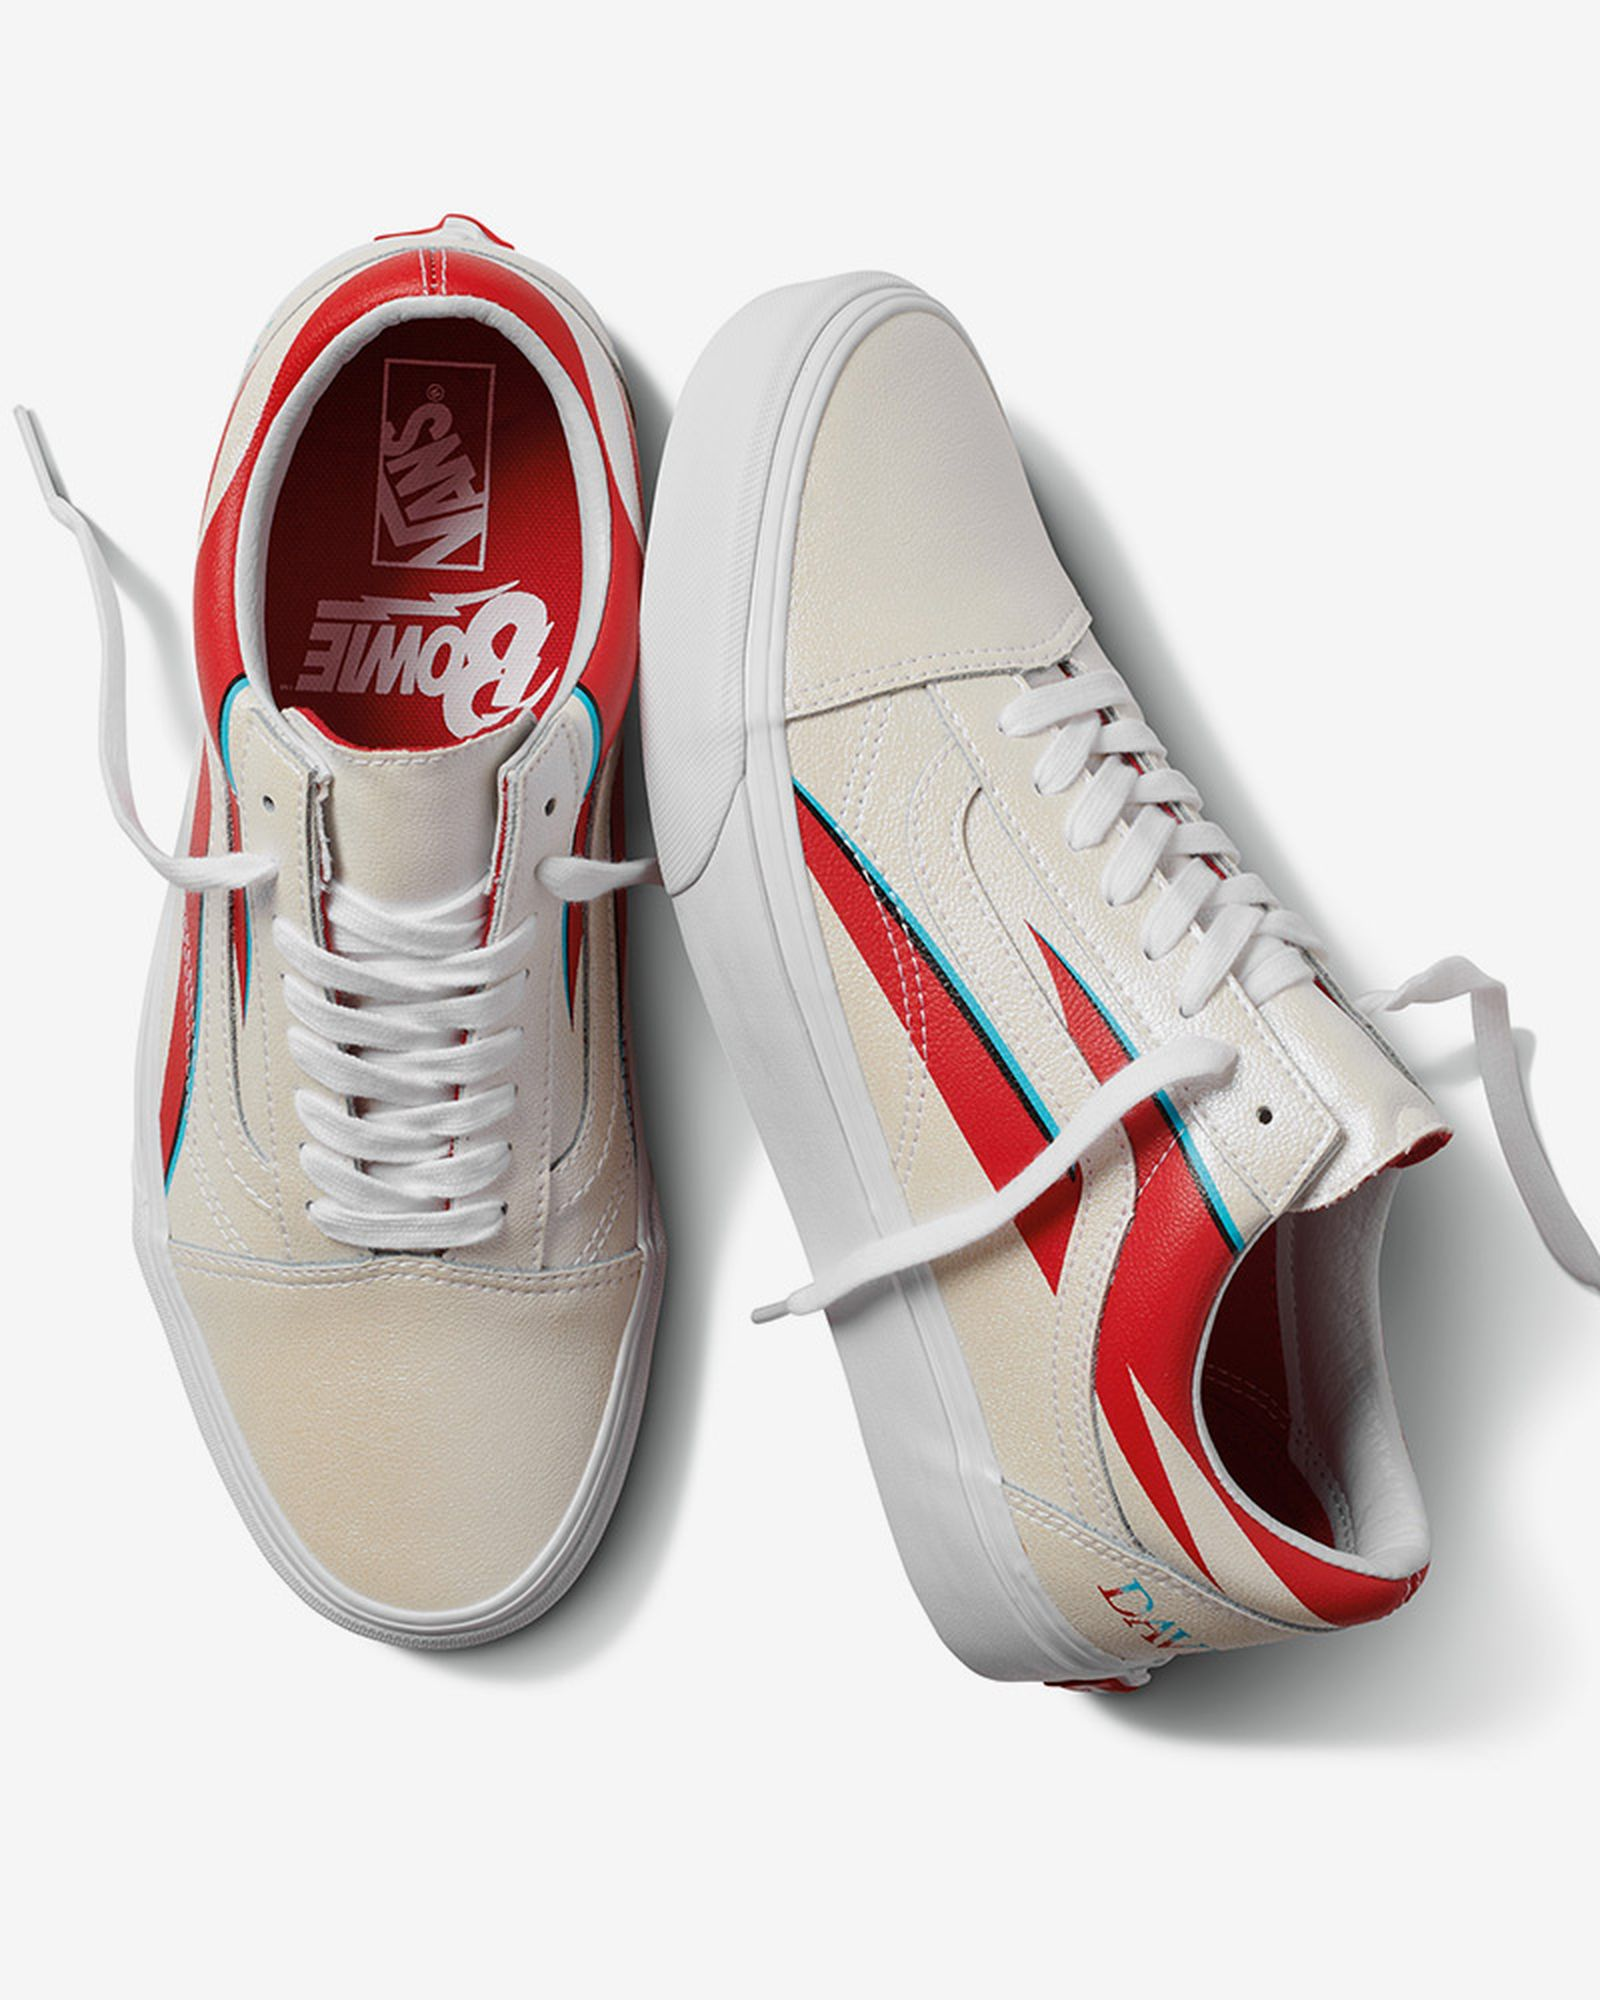 david bowie vans collection release date price official product